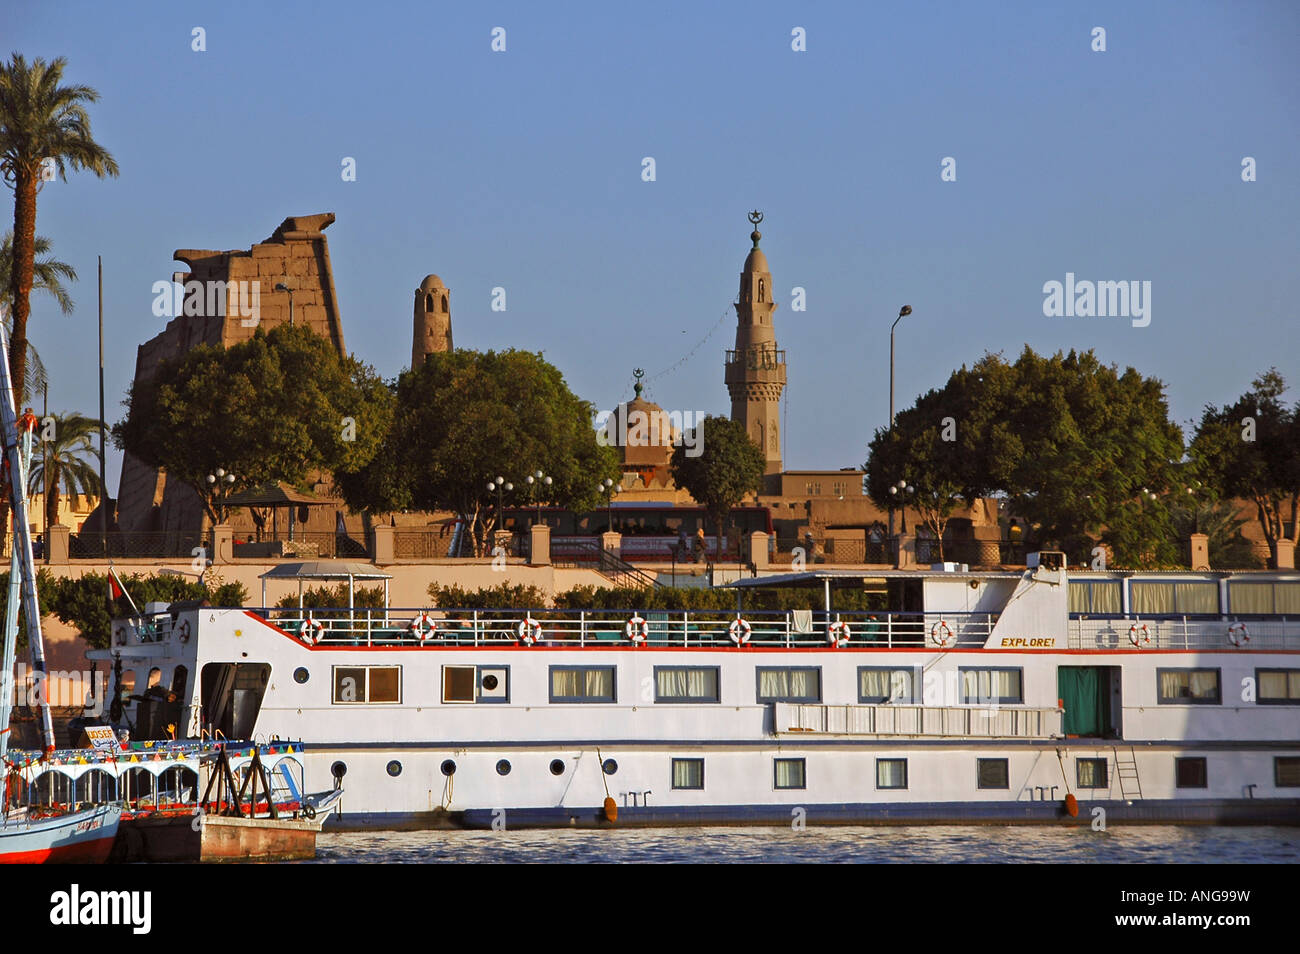 Nile cruiser vessel docked in the Nile River in Aswan southern Egypt - Stock Image